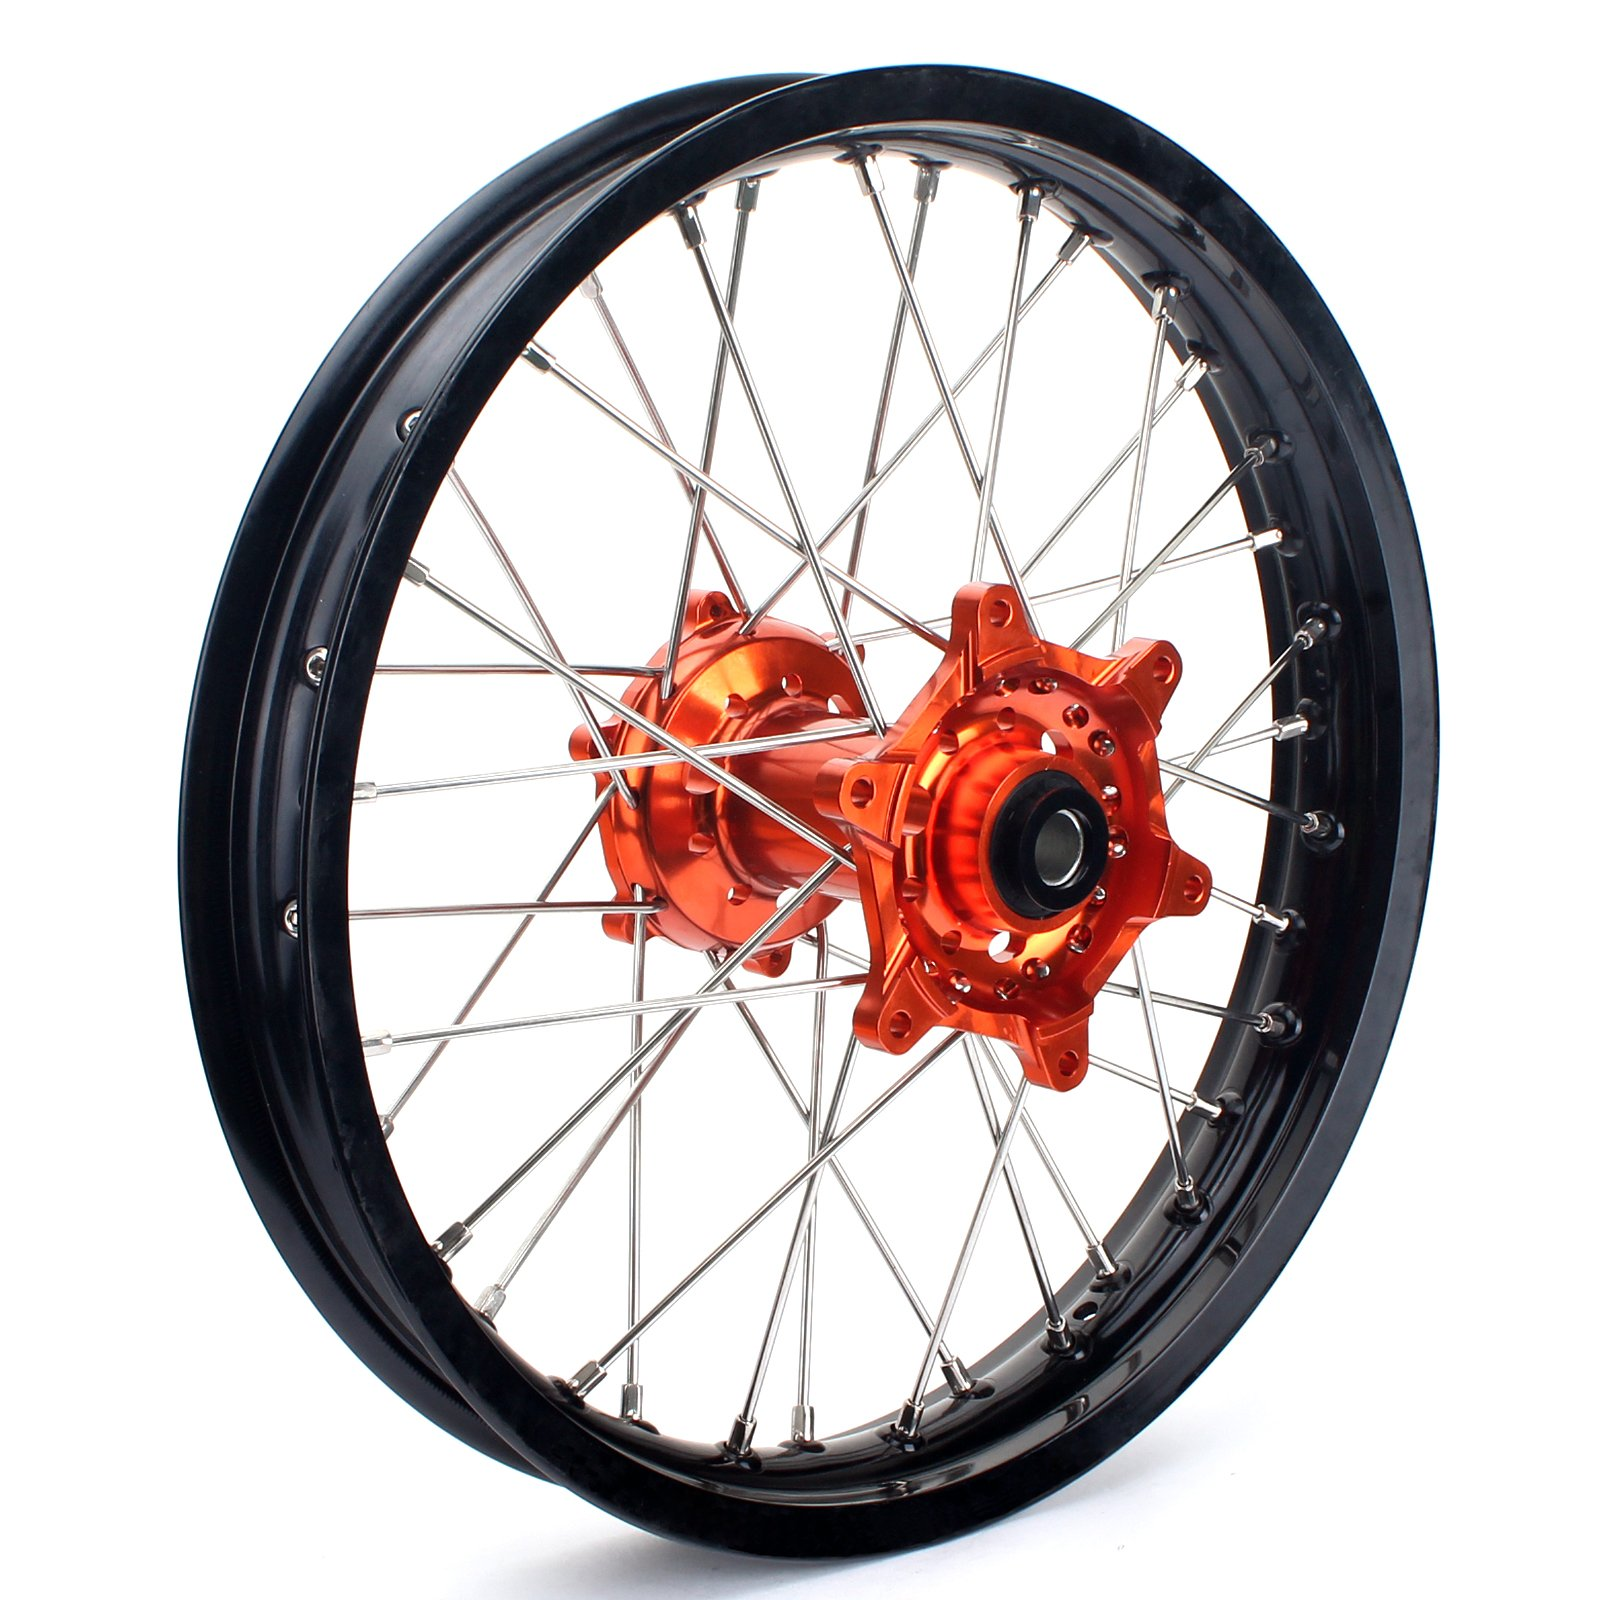 TARAZON 18'' Rear Wheel Kit Rim Orange Hub Spokes for KTM SX XC SX-F XC-F 125 150 250 300 350 450 With 25mm axle spacers